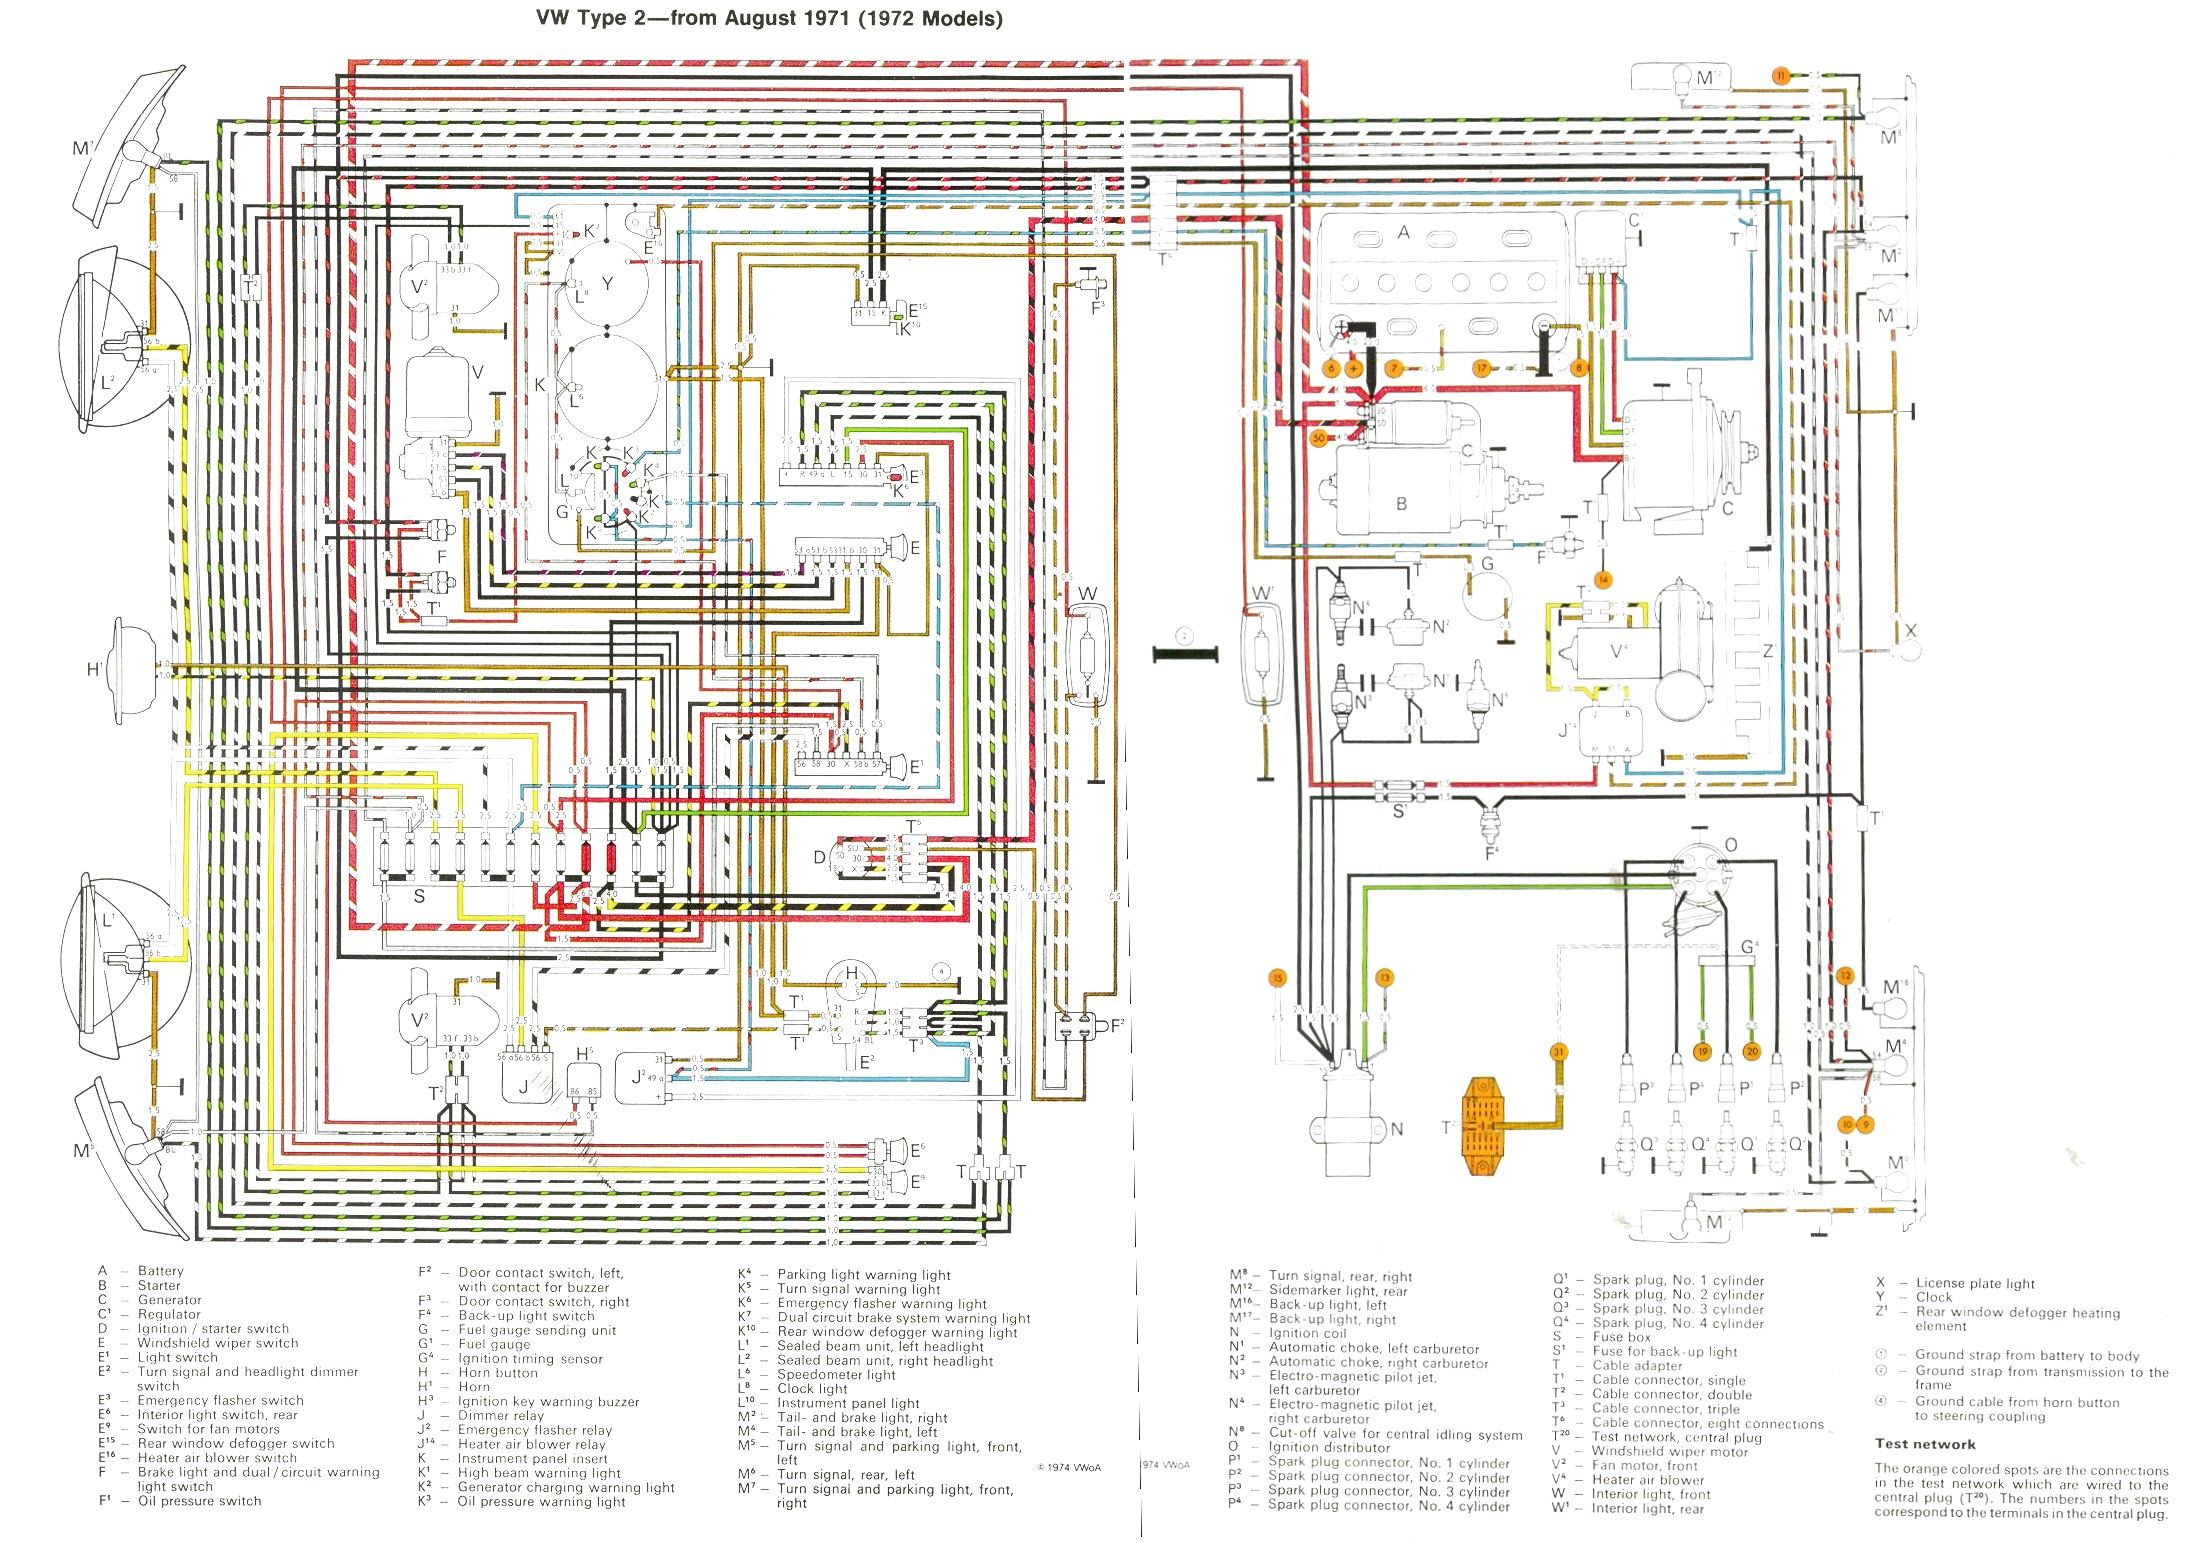 72 vw wiring diagram trusted wiring diagrams u2022 rh sivamuni com air cooled vw alternator wiring diagram